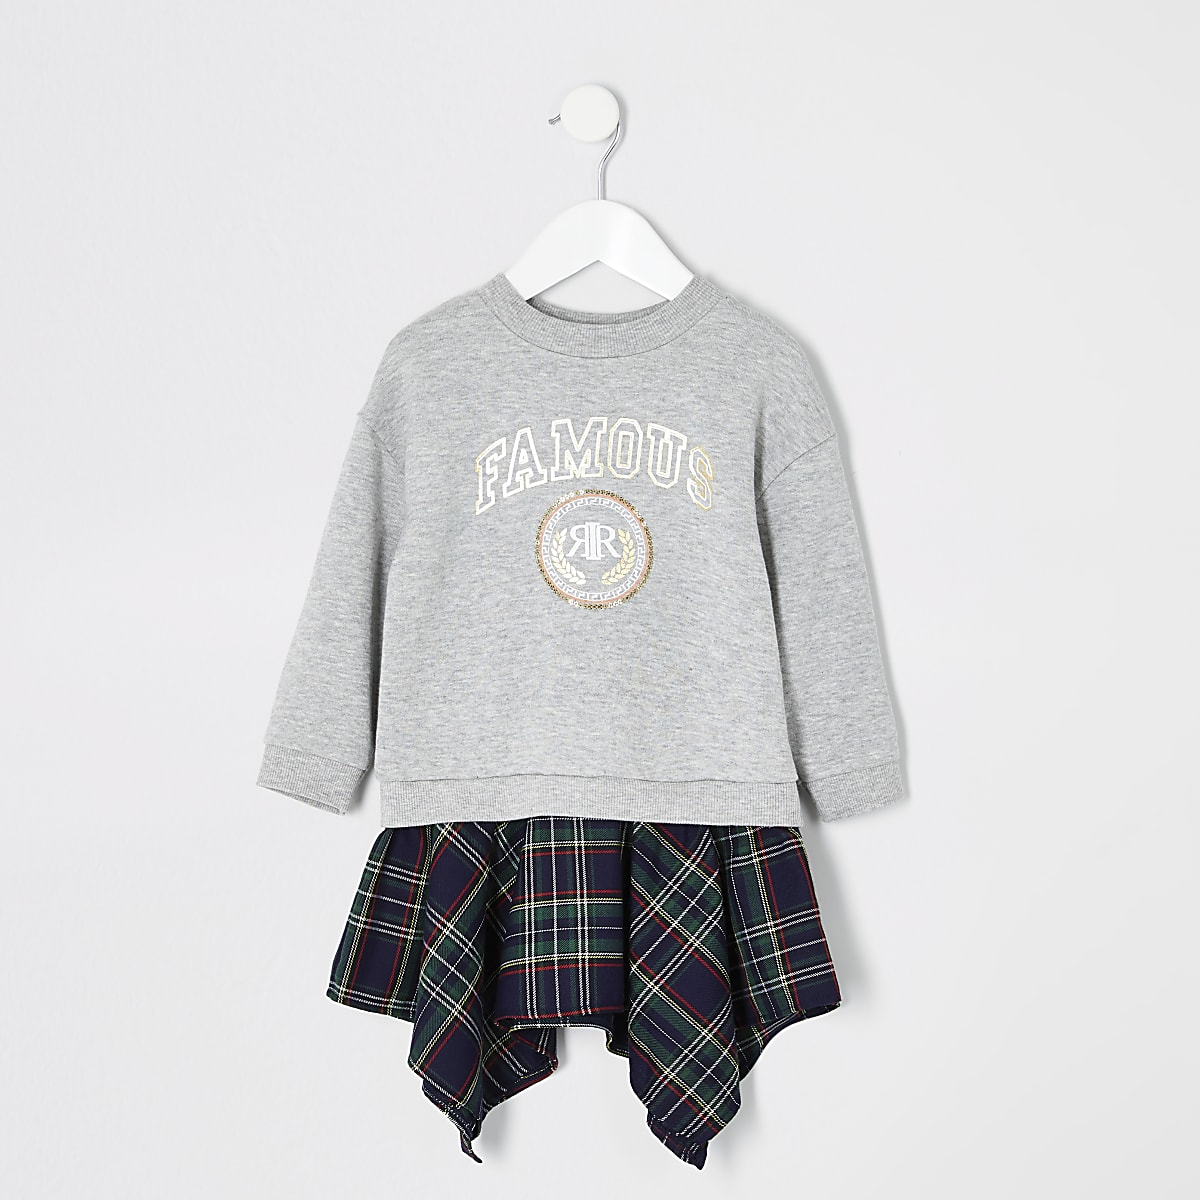 Mini girls grey 'famous' sweat dress